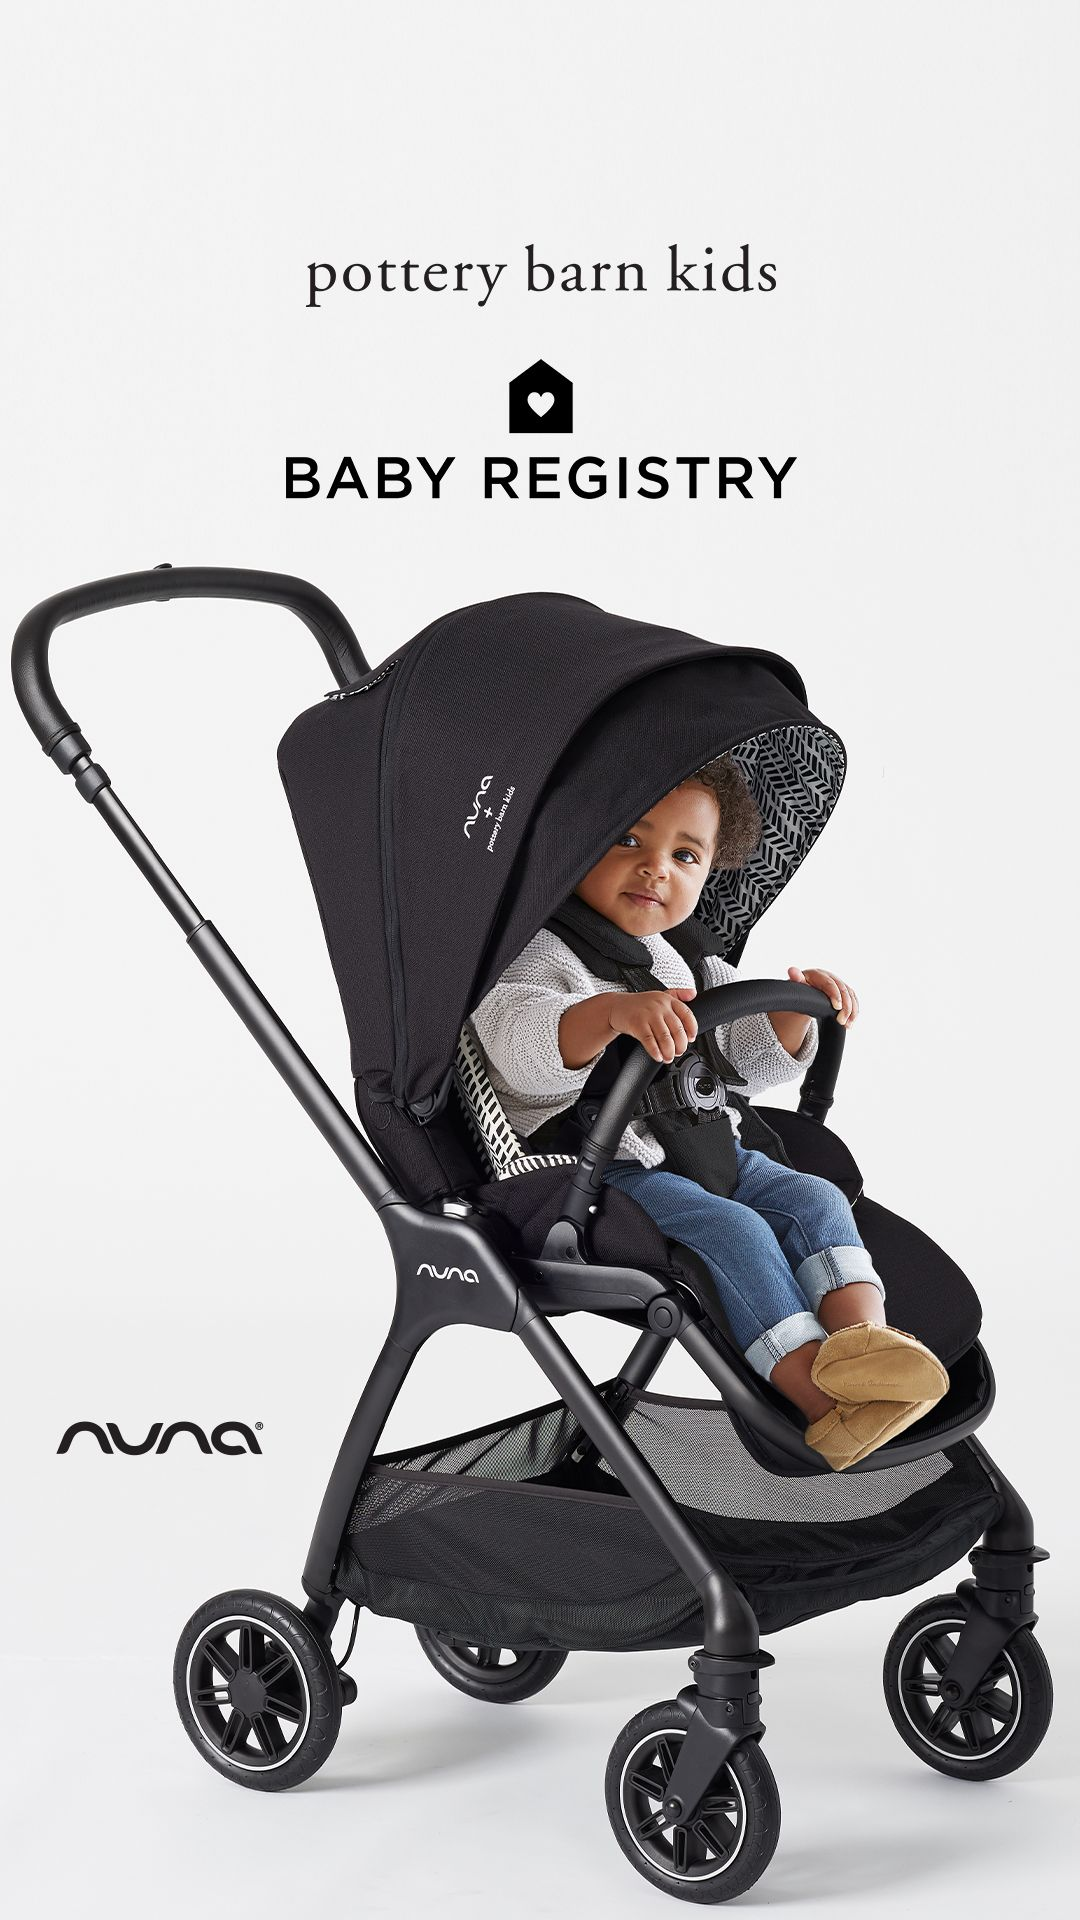 Registry MustHaves in 2020 Pottery barn kids, Online